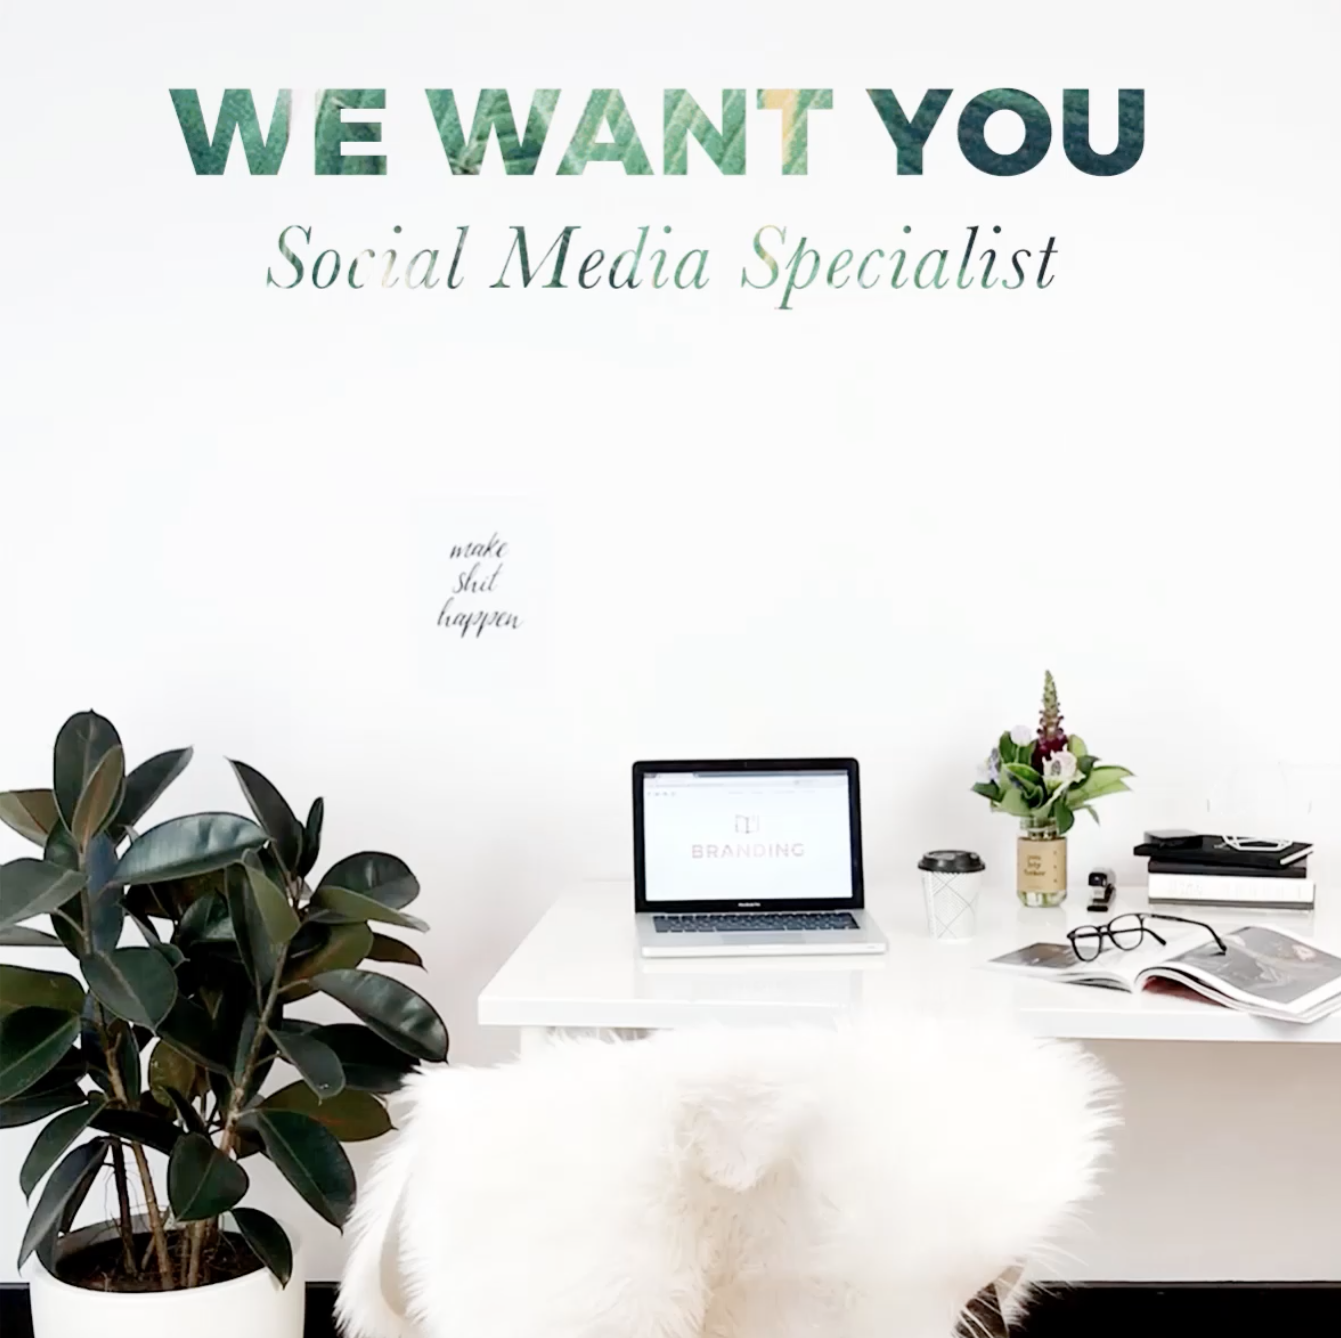 FWRD Agency Social Media Marketing Agency Job Position